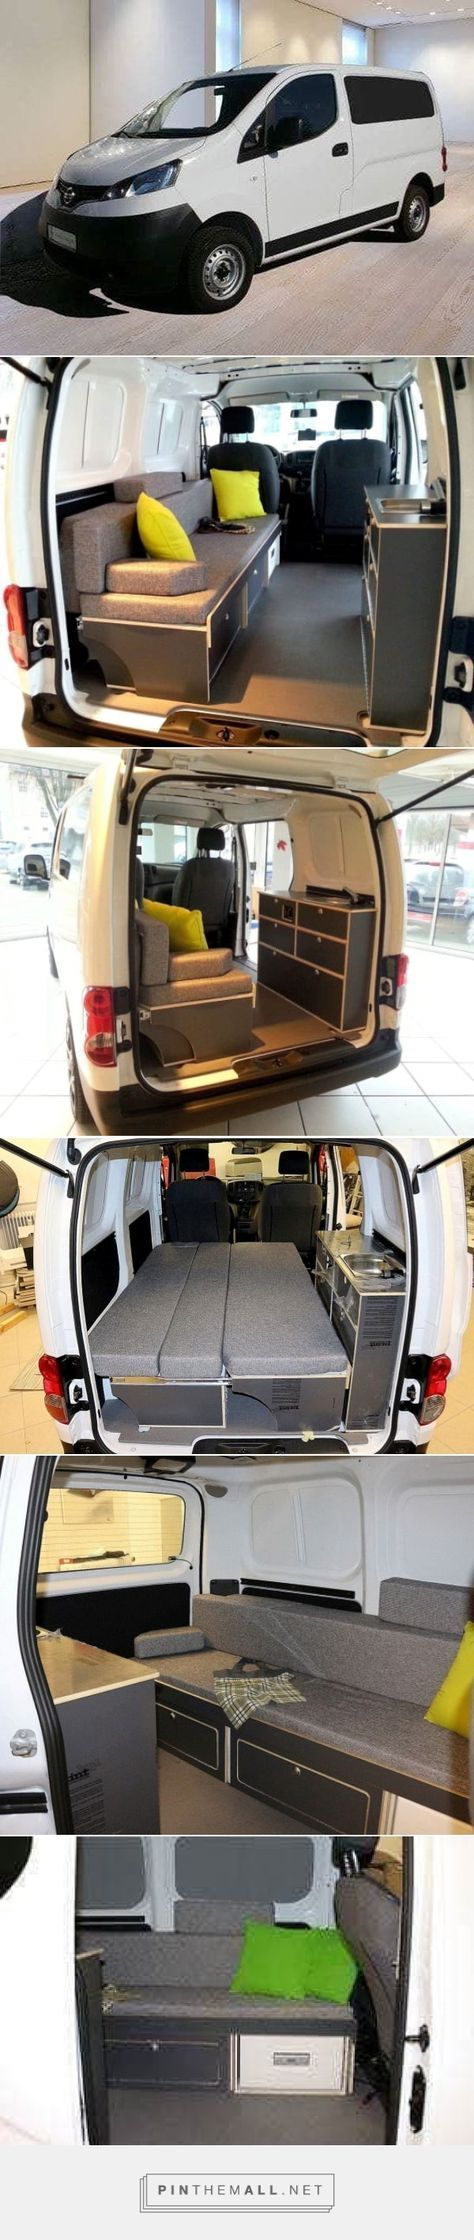 Bed sofa for Nissan NV200 mini-camper in Wetzikon buy at ricardo.ch – created via pinthemall.net